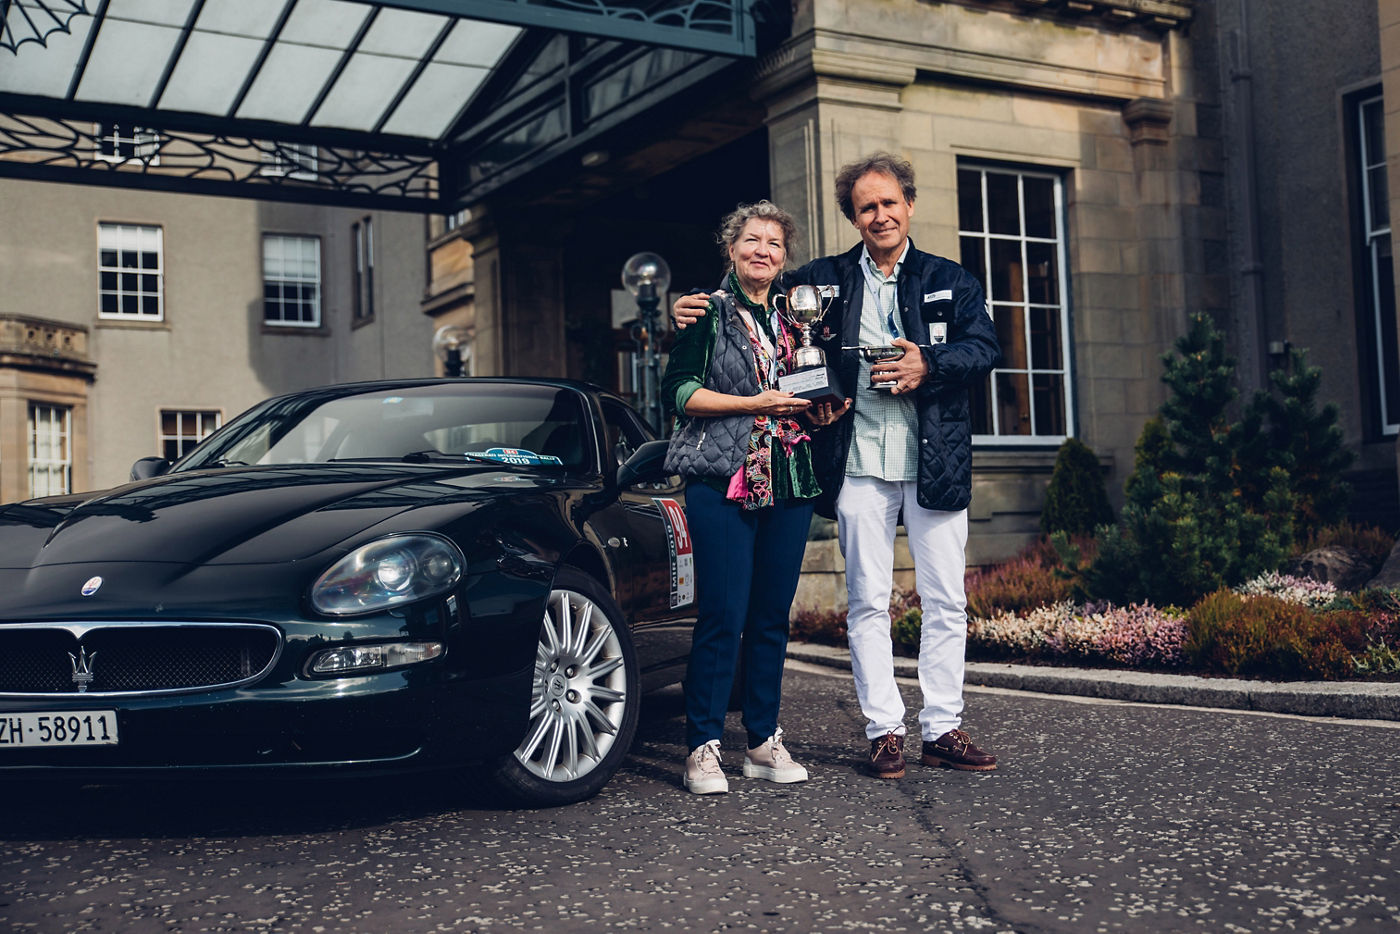 Maserati International Rally 2019 - Gleneagles Hotel Winners of the Peter Martin Trophy